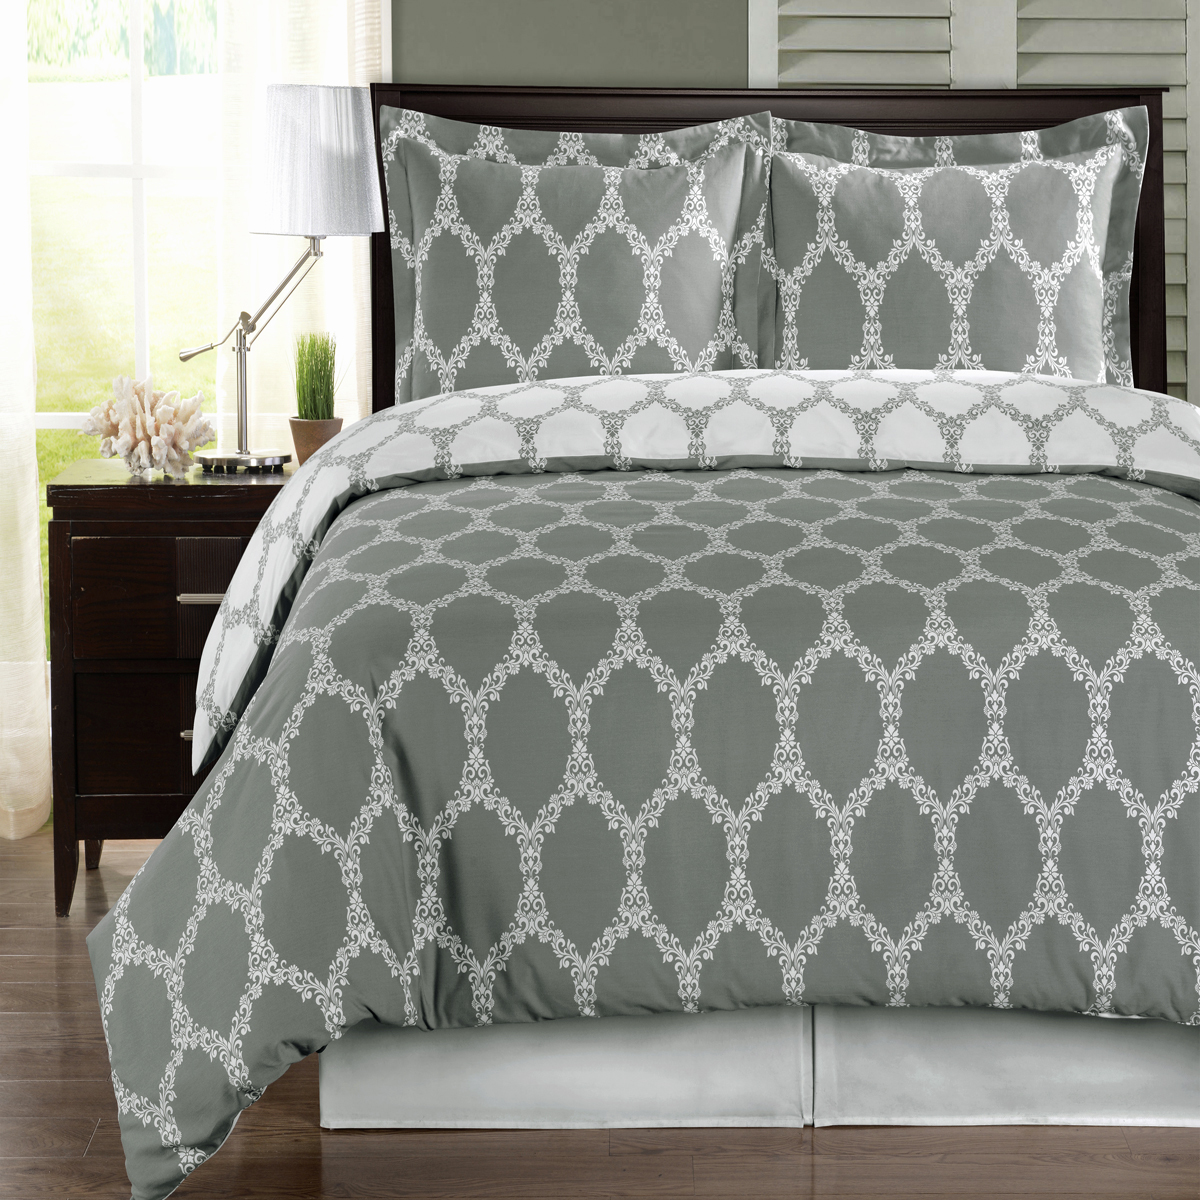 Brooksfield 100% Extra Soft Cotton Reversible Duvet Cover Set Twin Full Queen King Sizes